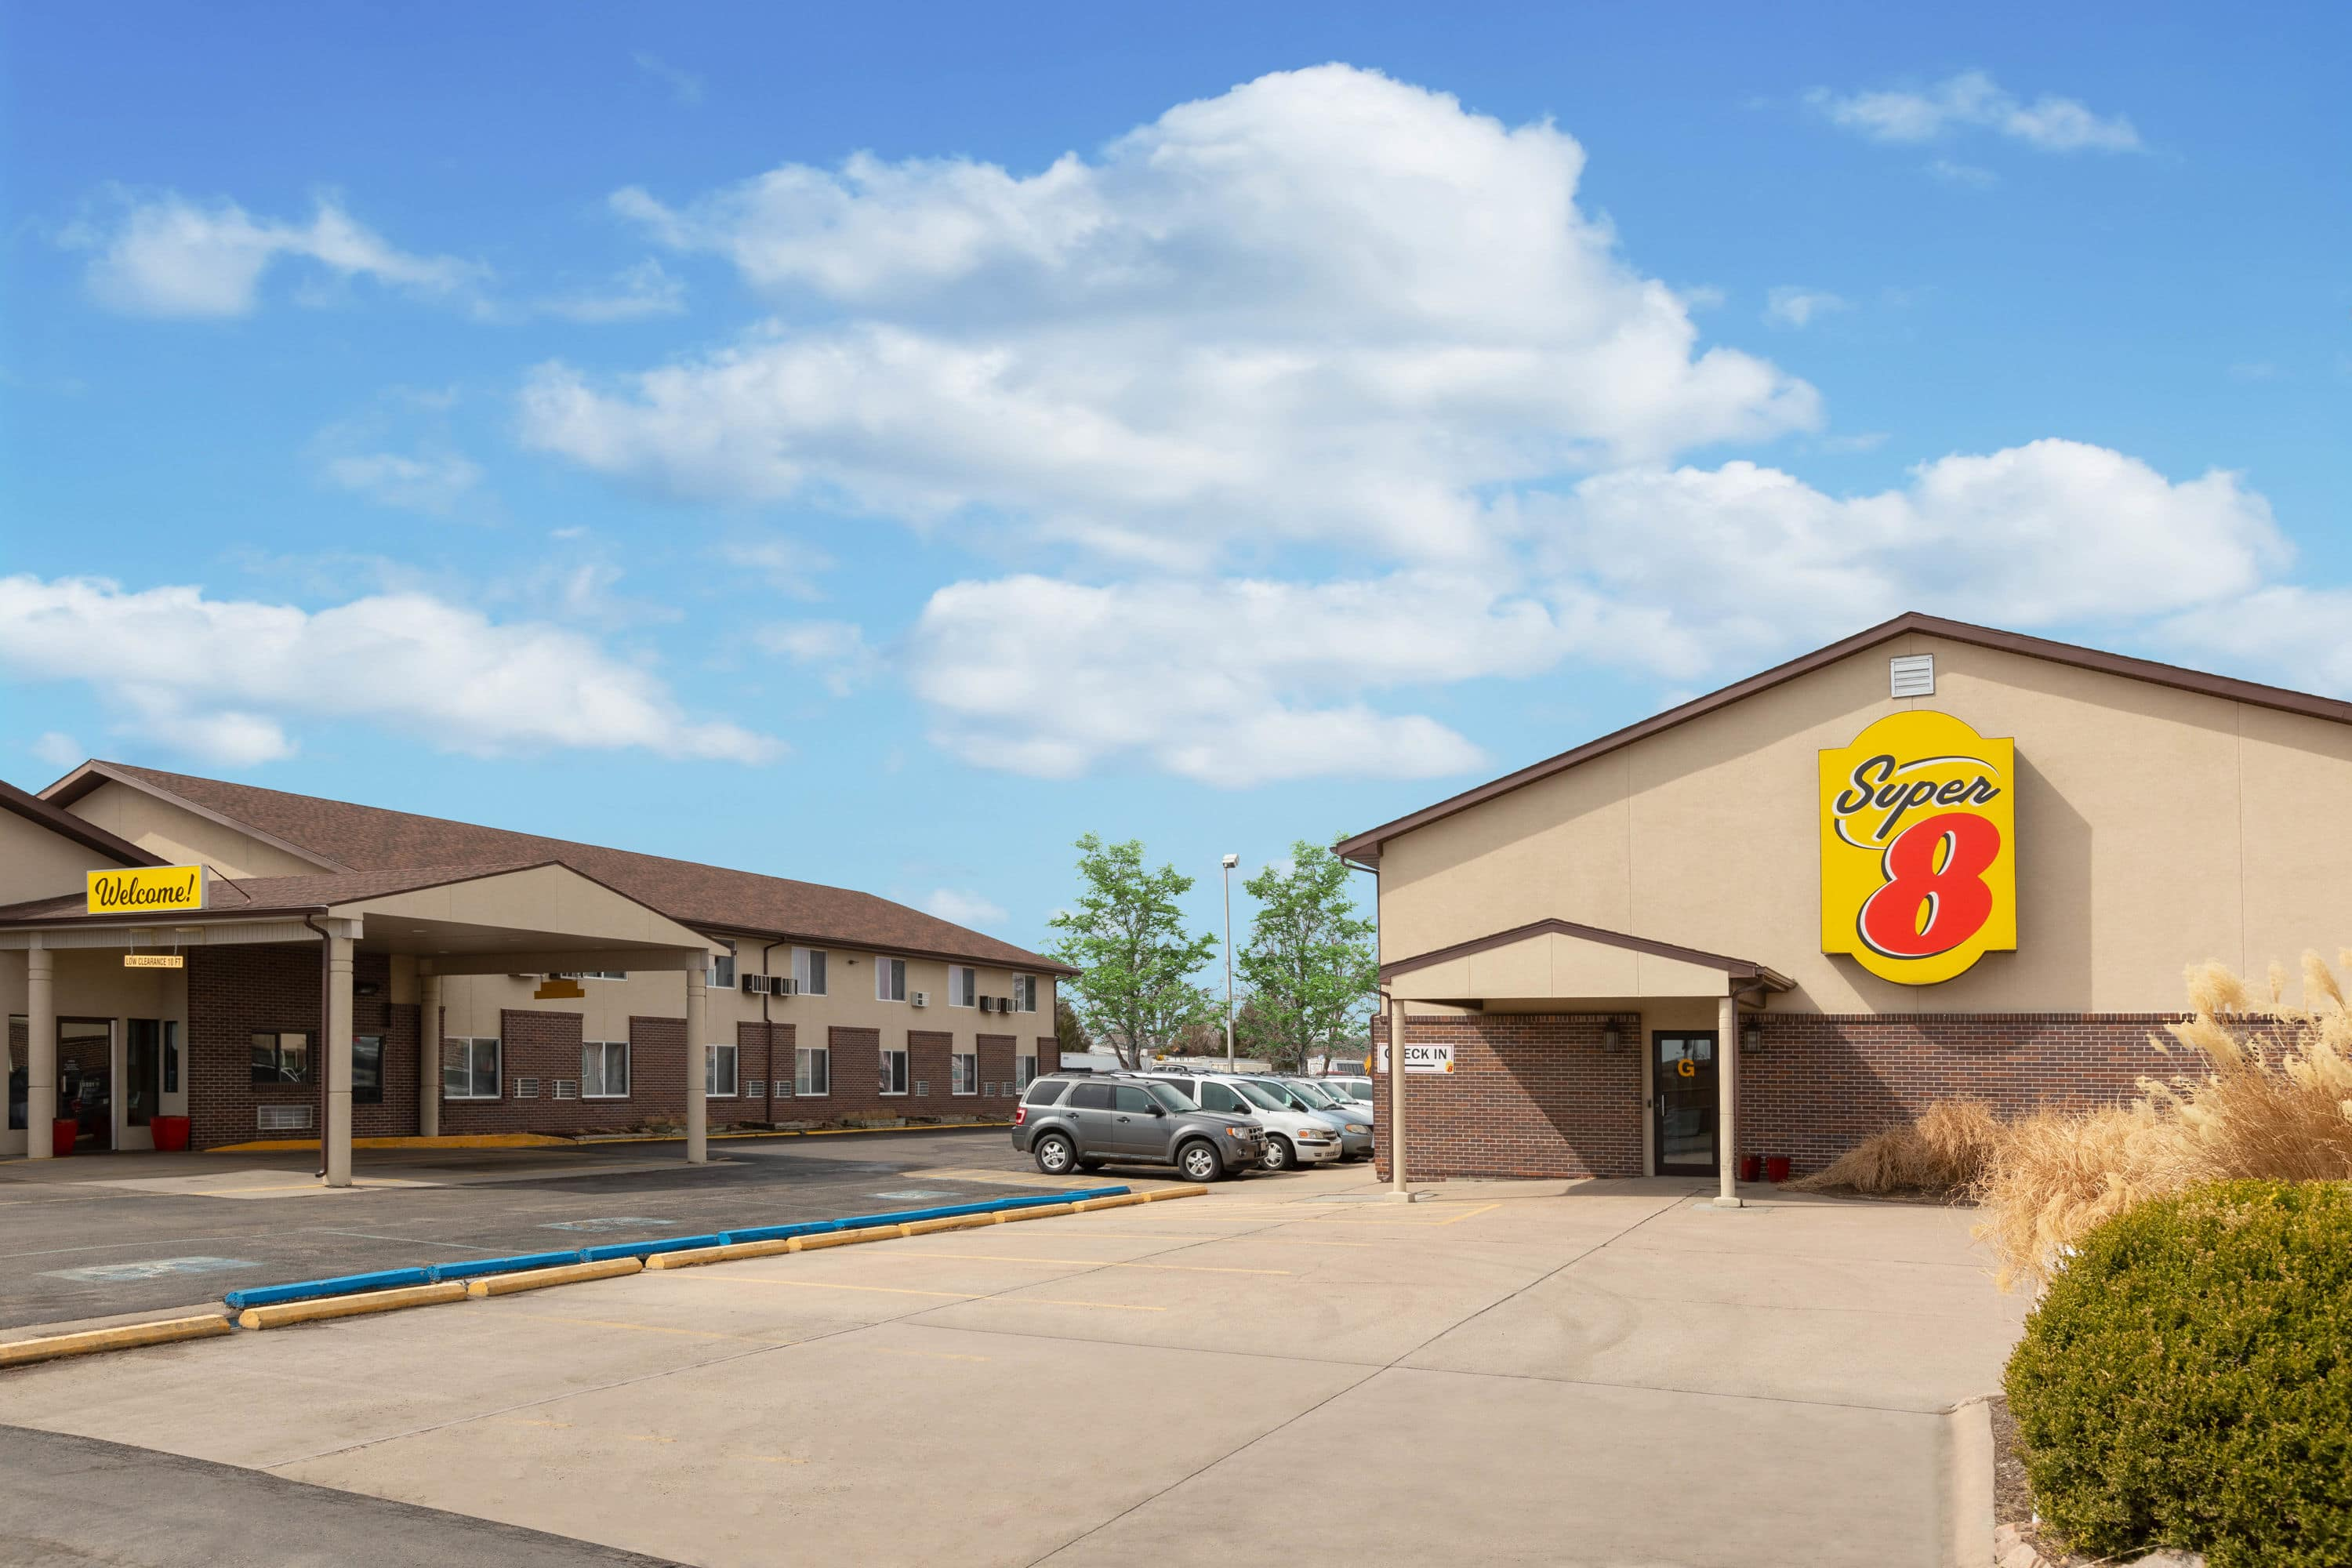 Super 8 by Wyndham North Platte | North Platte, NE Hotels